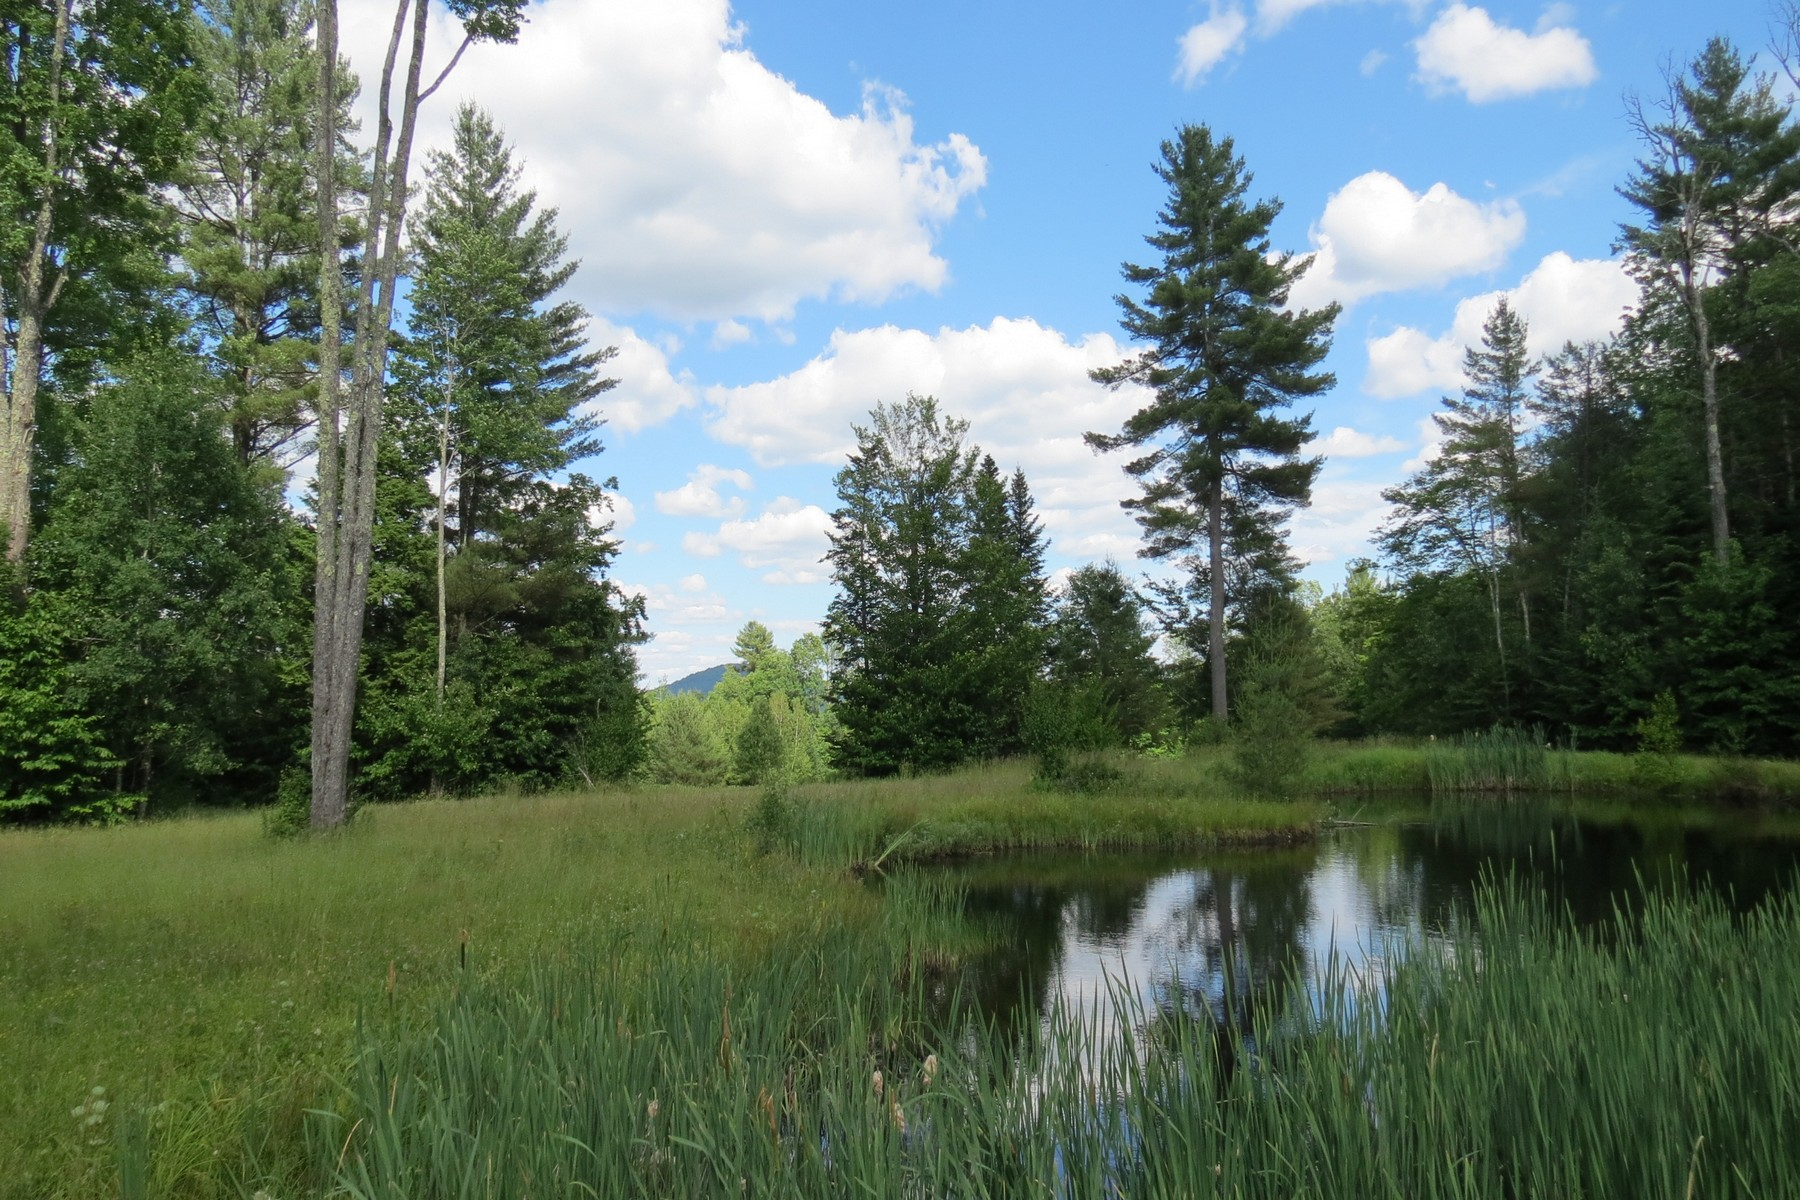 Terreno por un Venta en Serene Meadows, Mountain Views and Ponds 928 Landgrove Rd Londonderry, Vermont, 05148 Estados Unidos